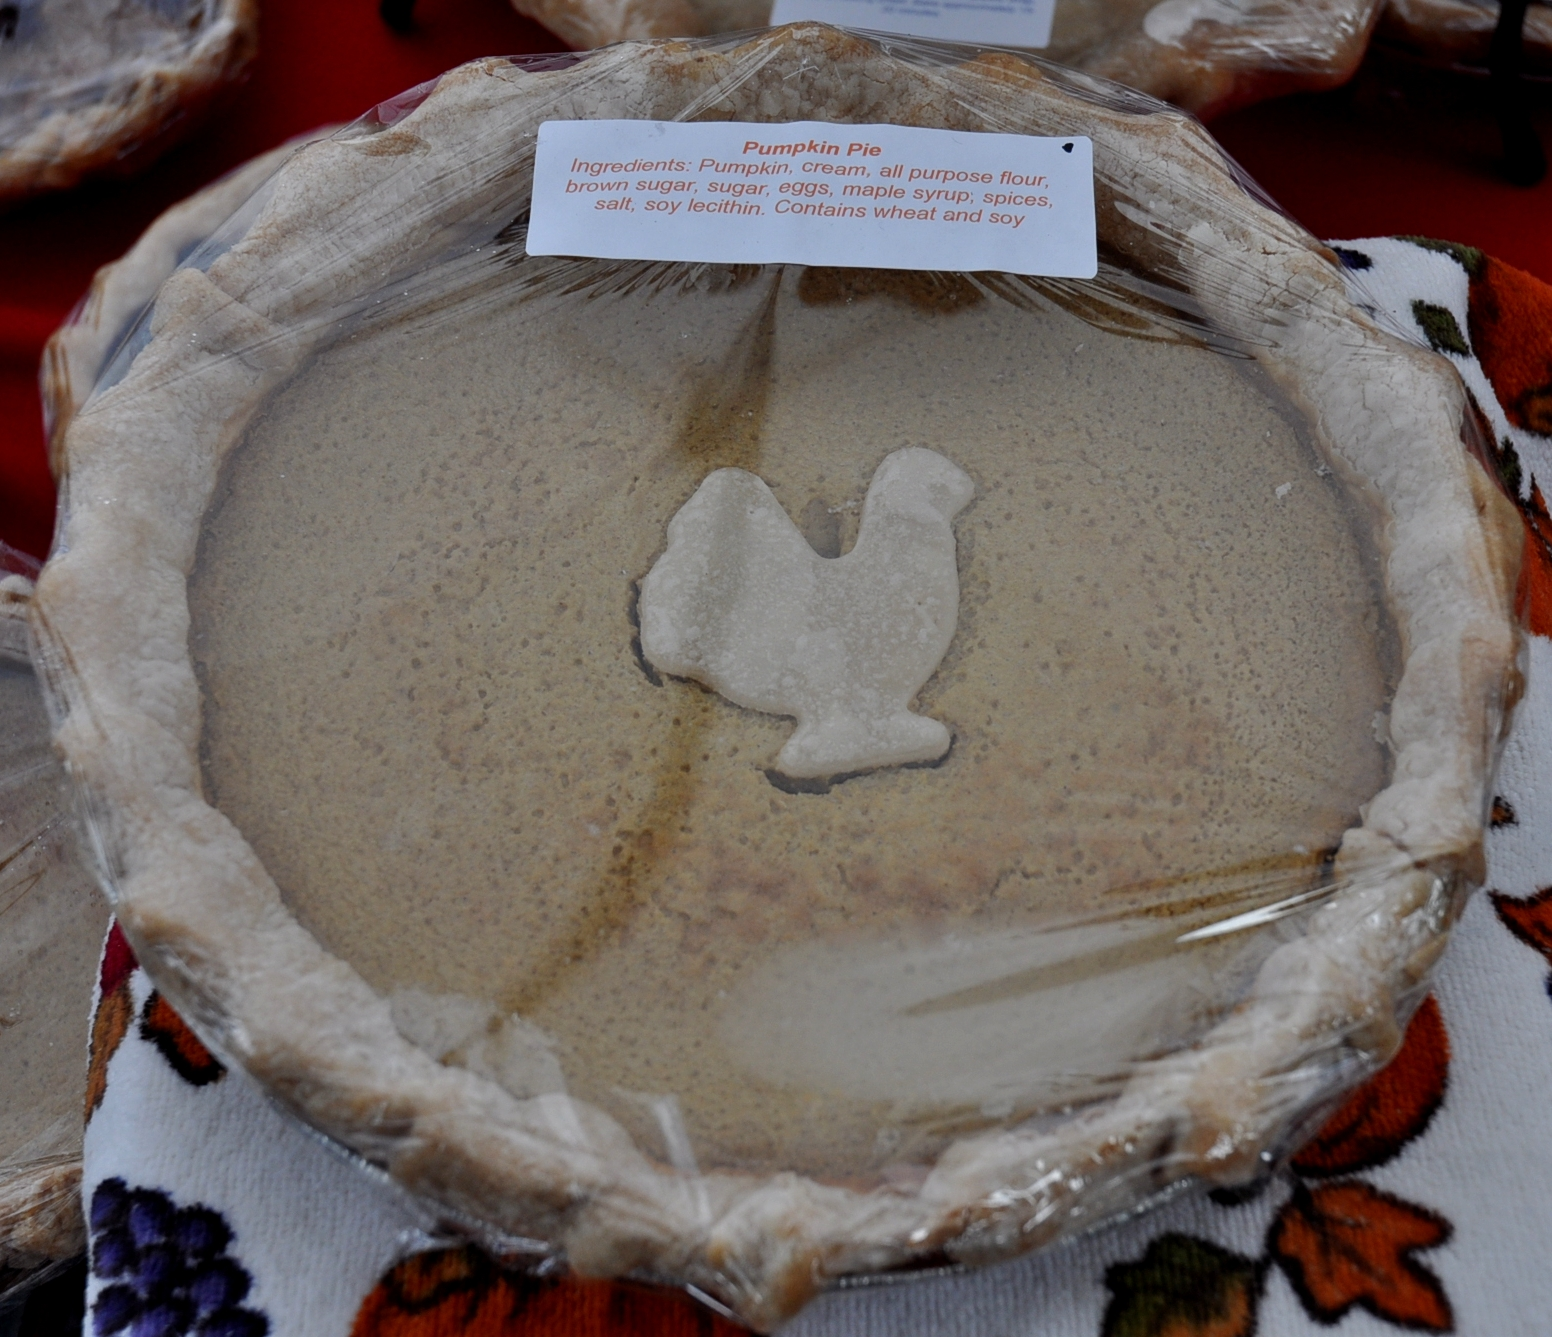 Thanksgiving pumpkin pie from Deborah's Homemade Pies at Ballard Farmers Market. Copyright Zachary D. Lyons.